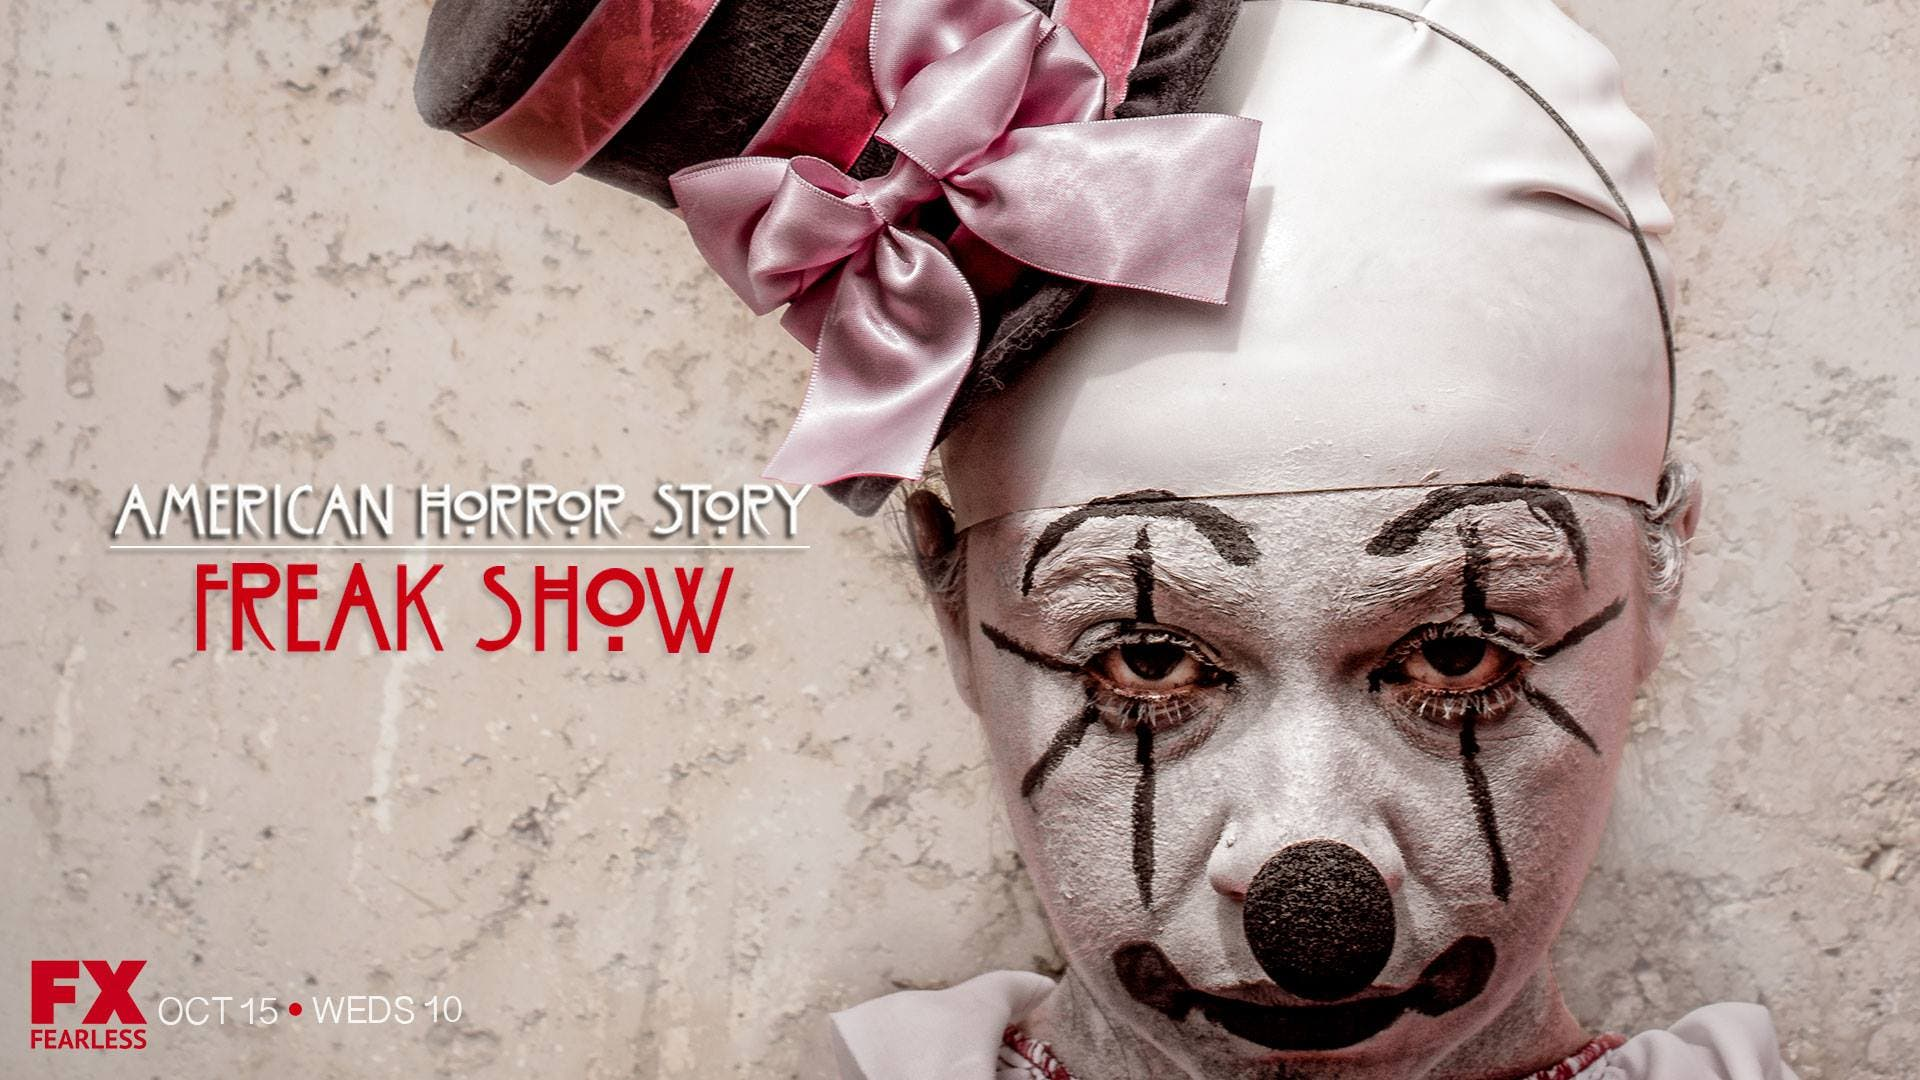 These Creepy Fan-Made Teasers for American Horror Story: Freakshow are Giving FX a Run for its Money